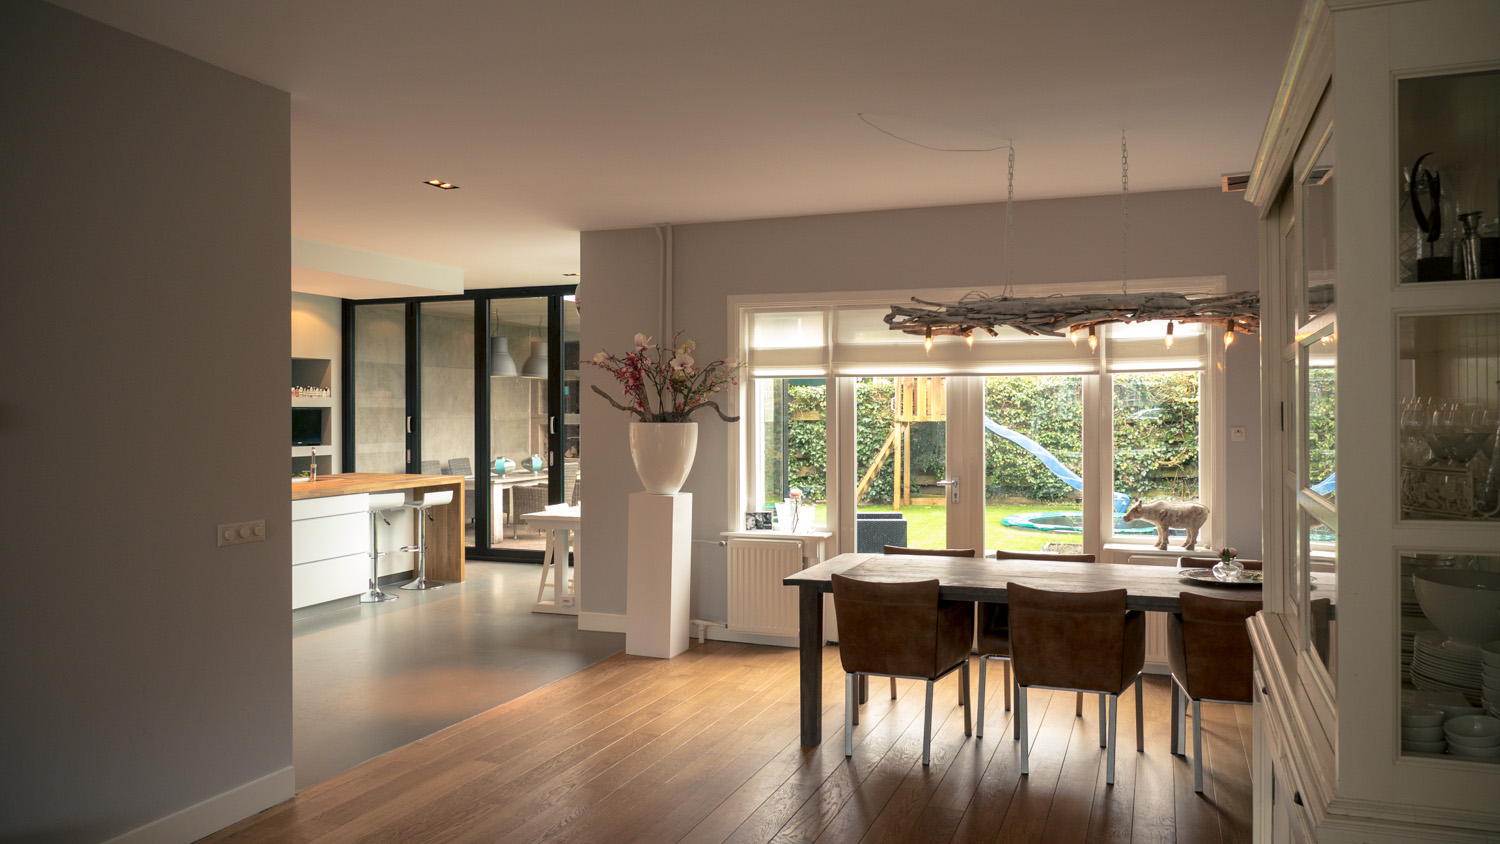 Renovation and extension with big kitchen in Breda